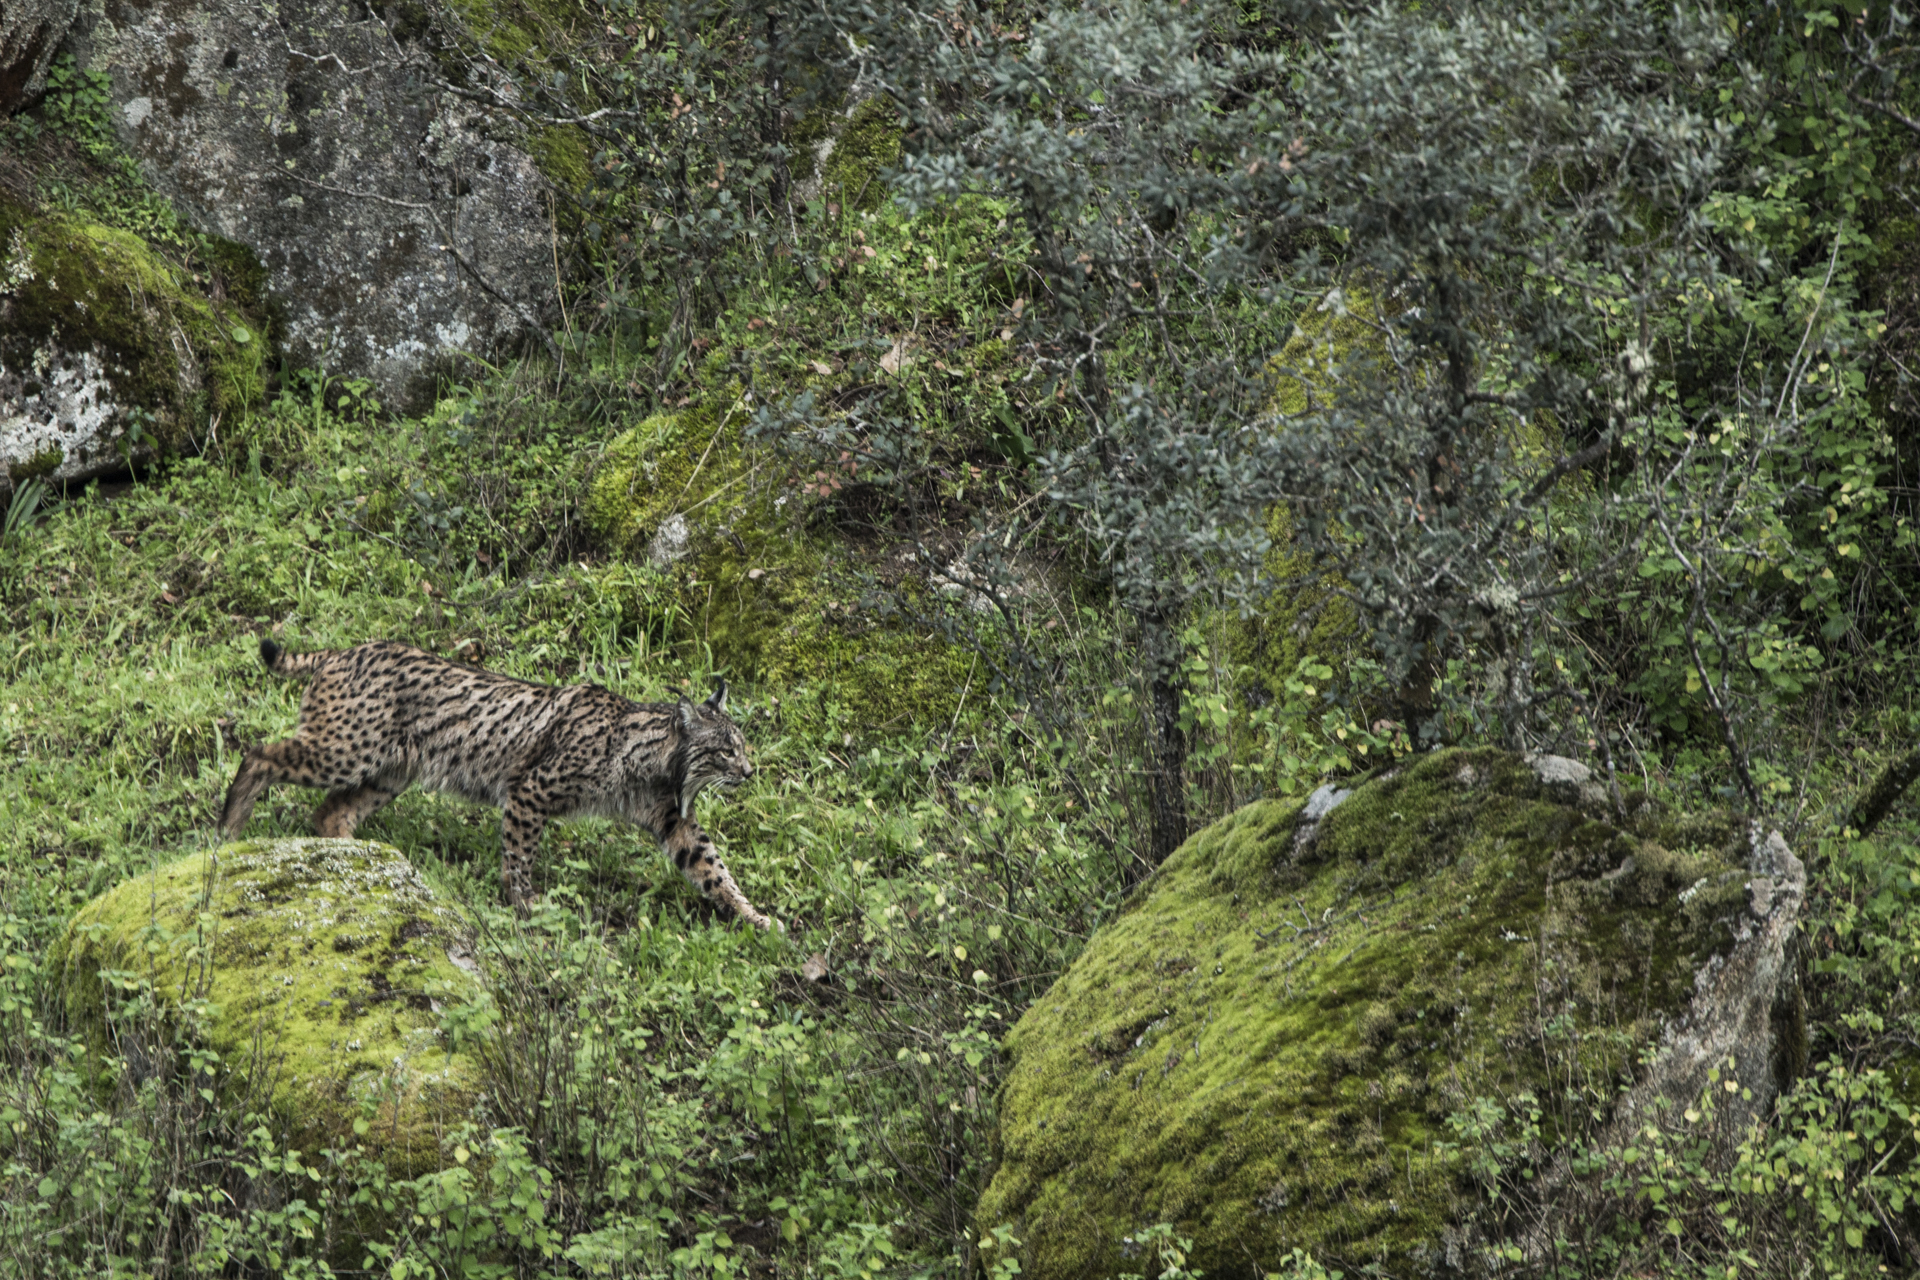 The cats are now found throughout southern Spain but their stronghold is the the Sierra de Andujar NP.